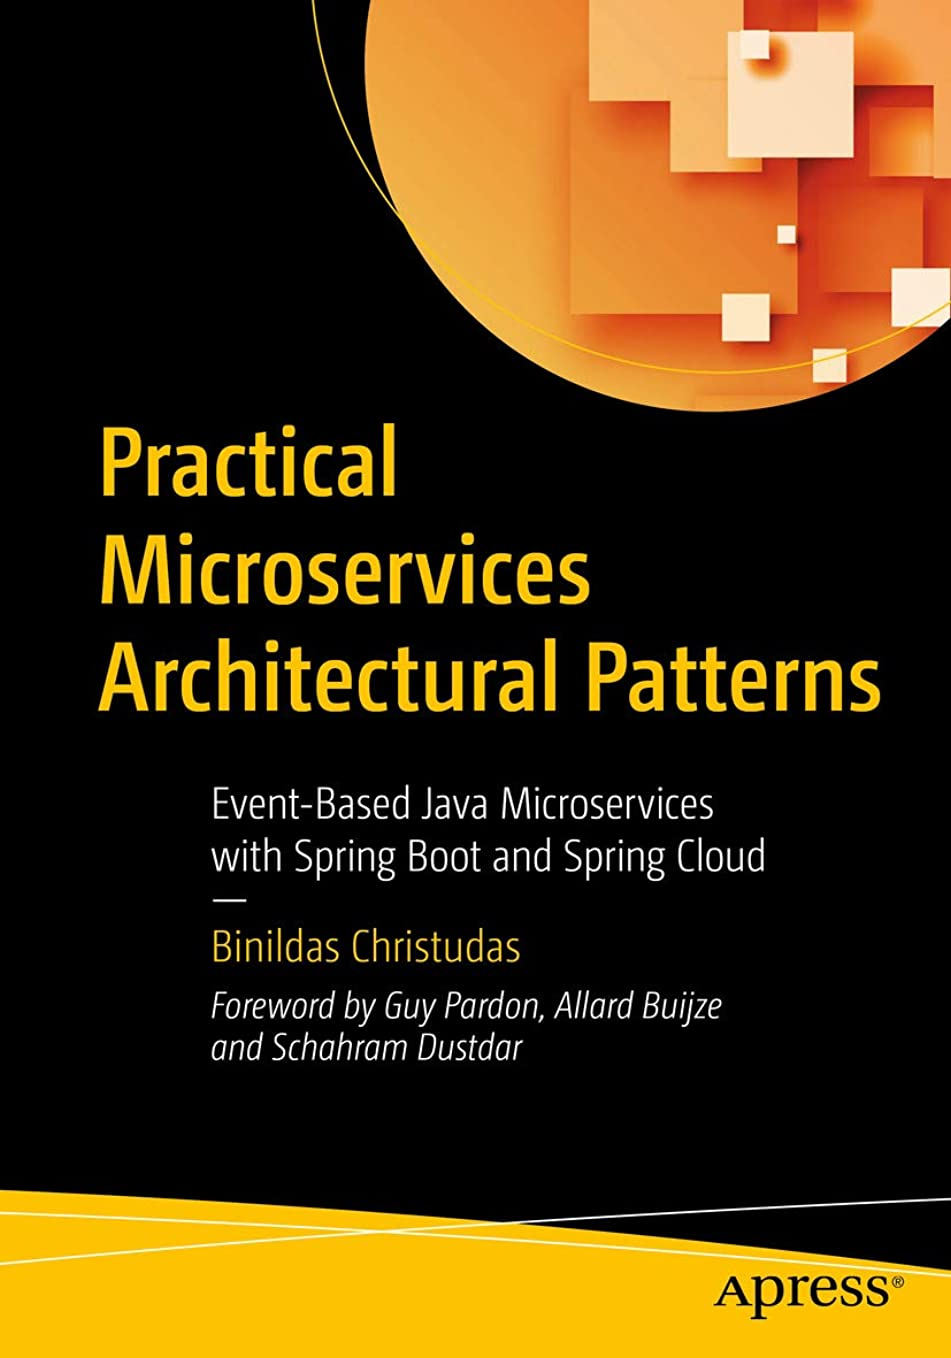 クルー段階生き返らせるPractical Microservices Architectural Patterns: Event-Based Java Microservices with Spring Boot and Spring Cloud (English Edition)